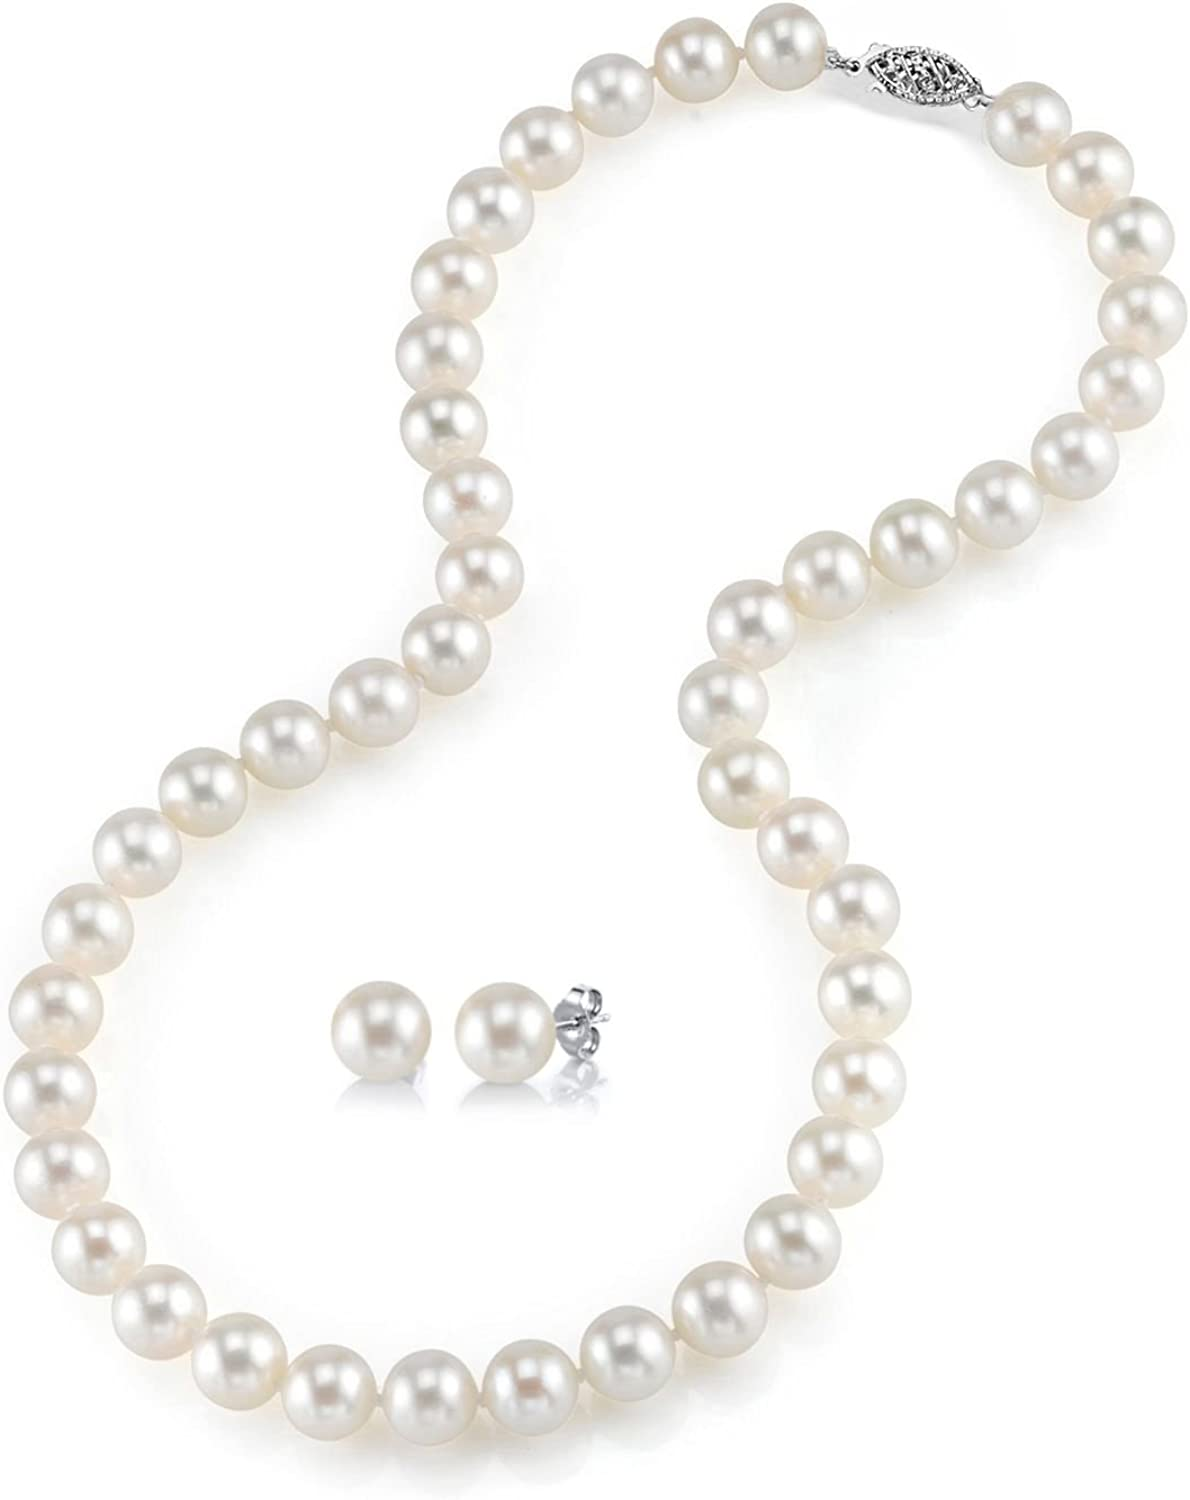 THE PEARL SOURCE 14K Gold 7-8mm Round White Freshwater Cultured Pearl Necklace & Earrings Set in 24